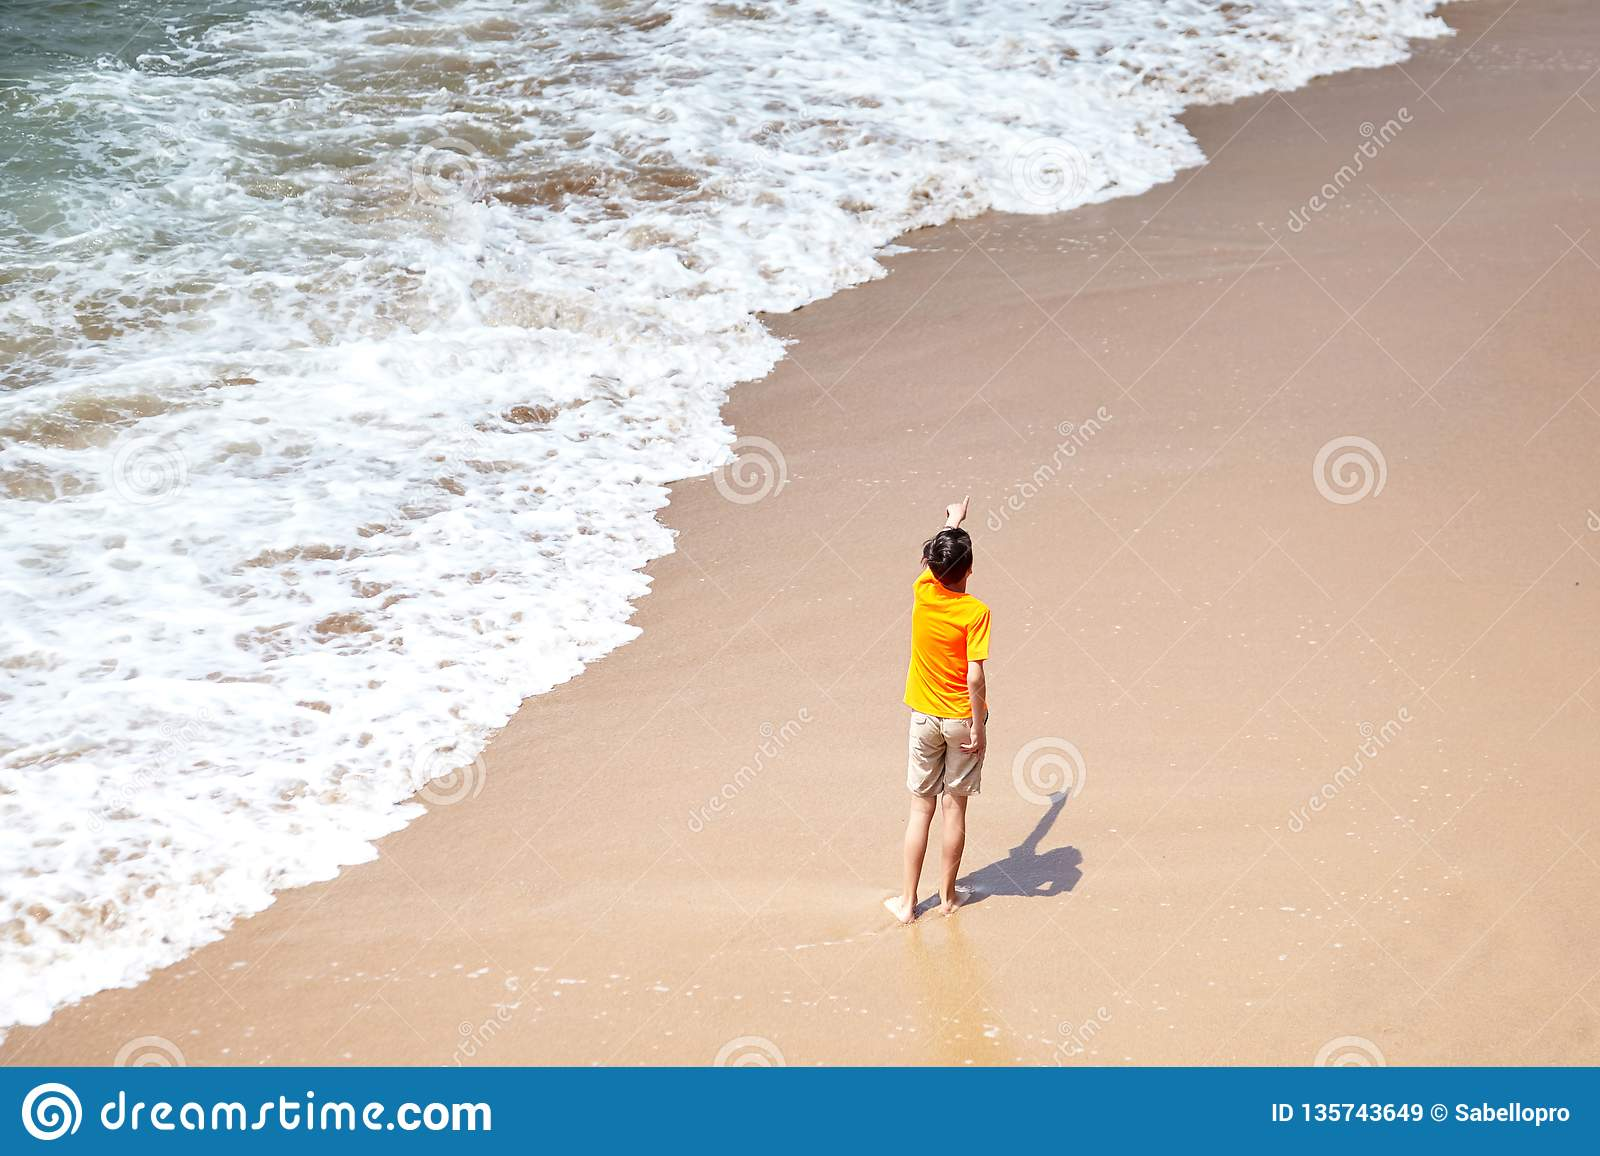 Boy pointing his hand away, kid playing on a sandy beach by the sea water